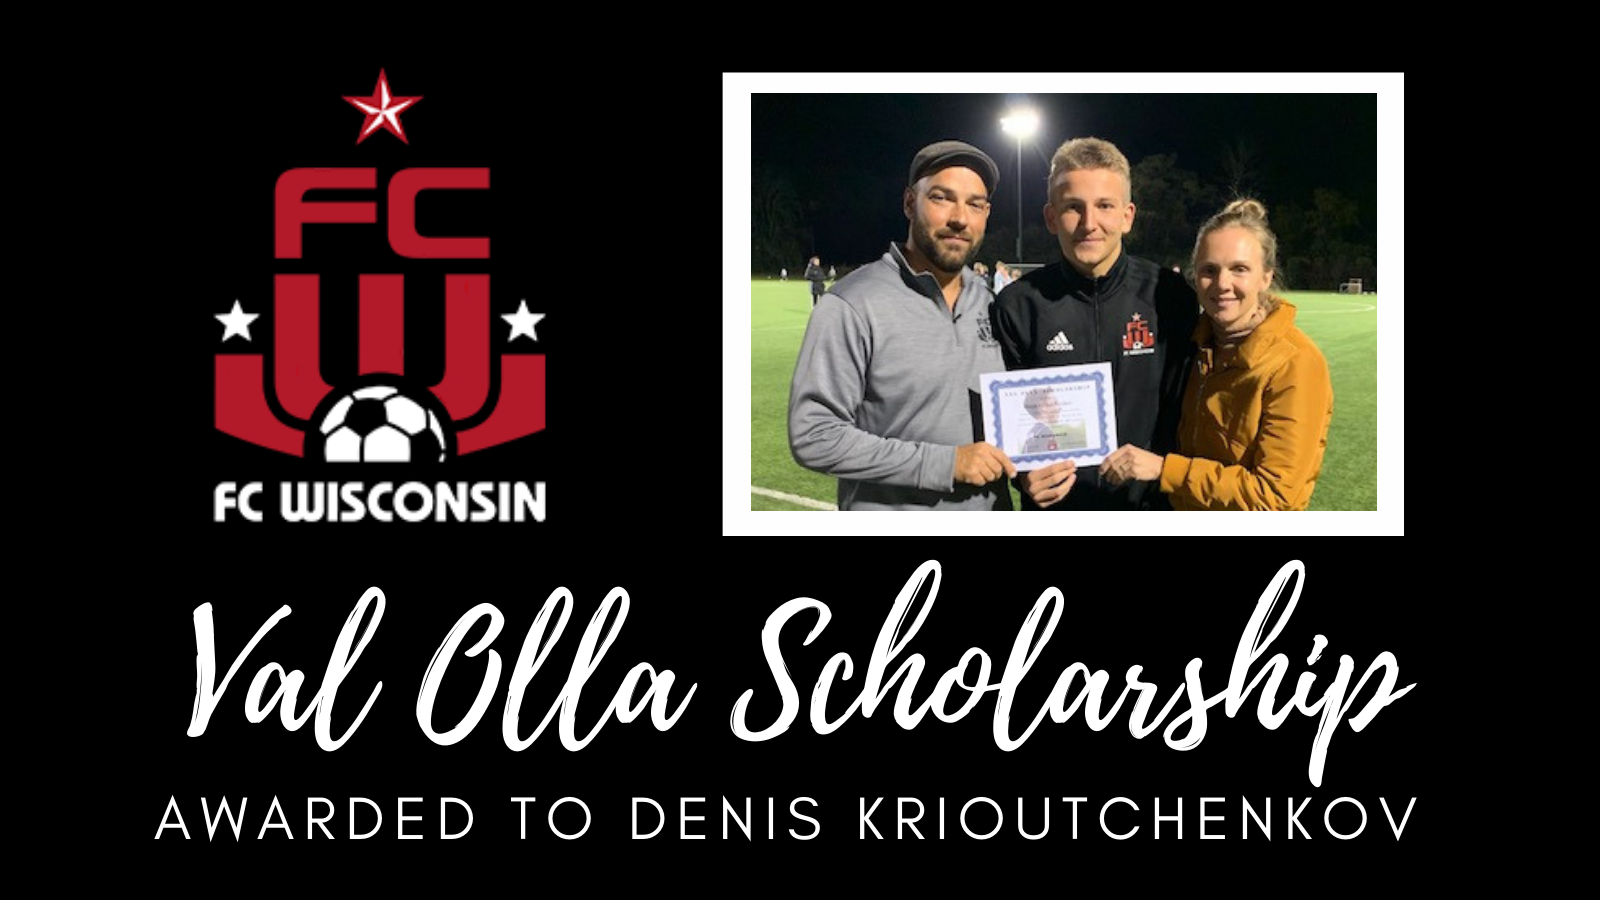 Val Olla Scholarship Awarded to Denis Krioutchenkov